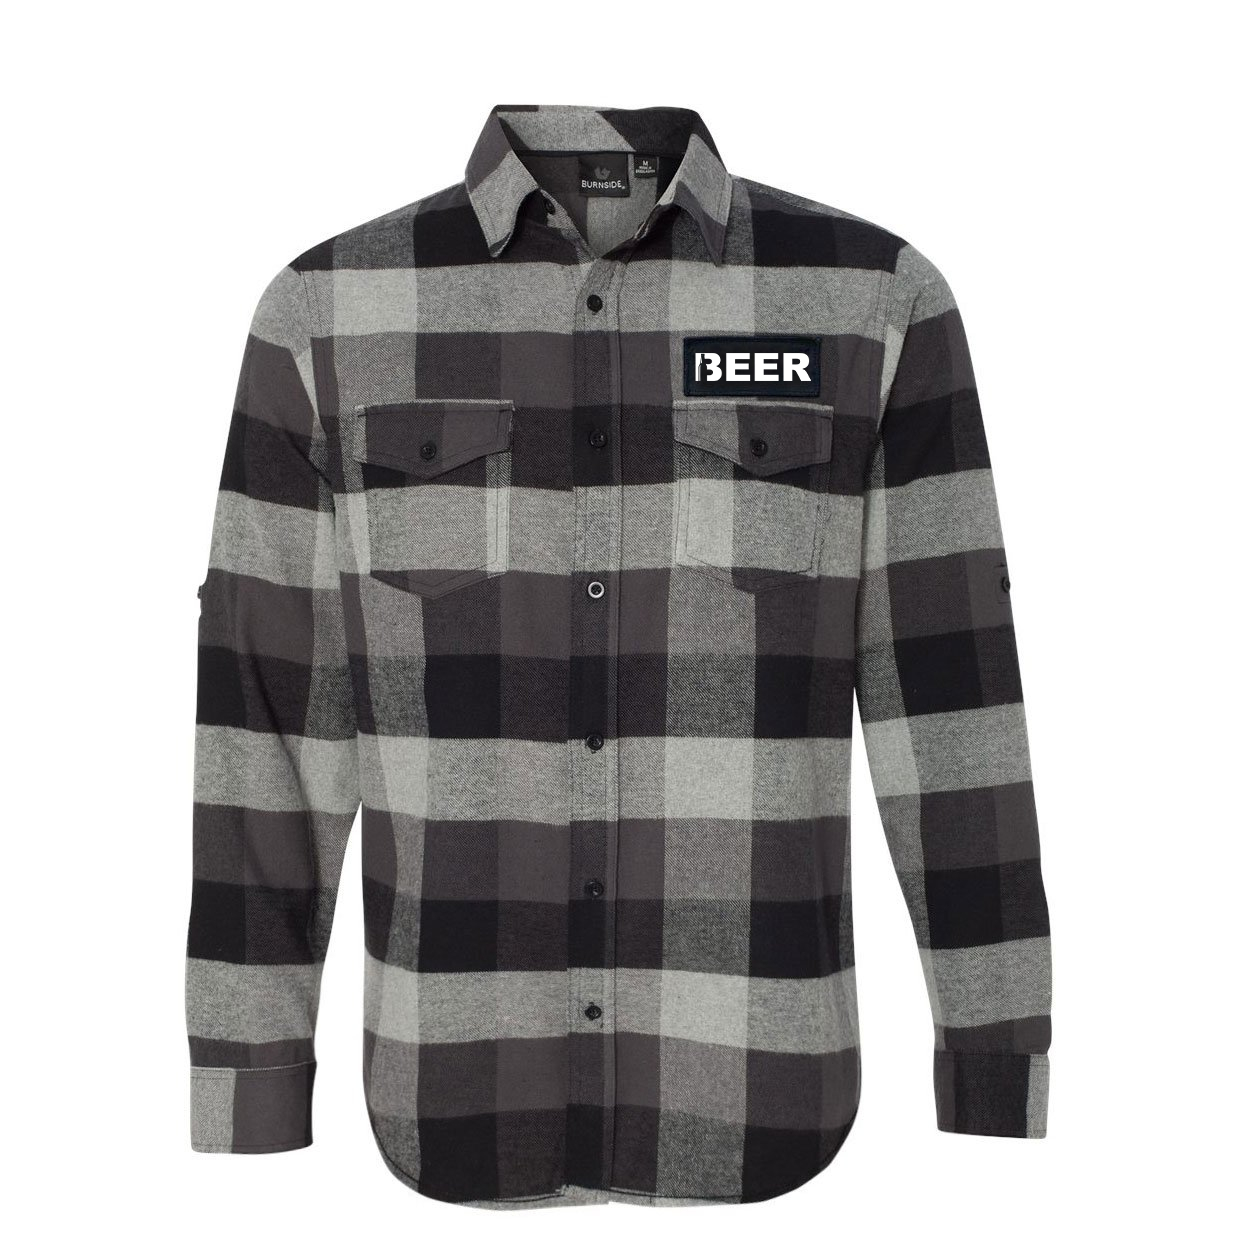 Beer Bottle Logo Classic Unisex Long Sleeve Woven Patch Flannel Shirt Black/Gray (White Logo)